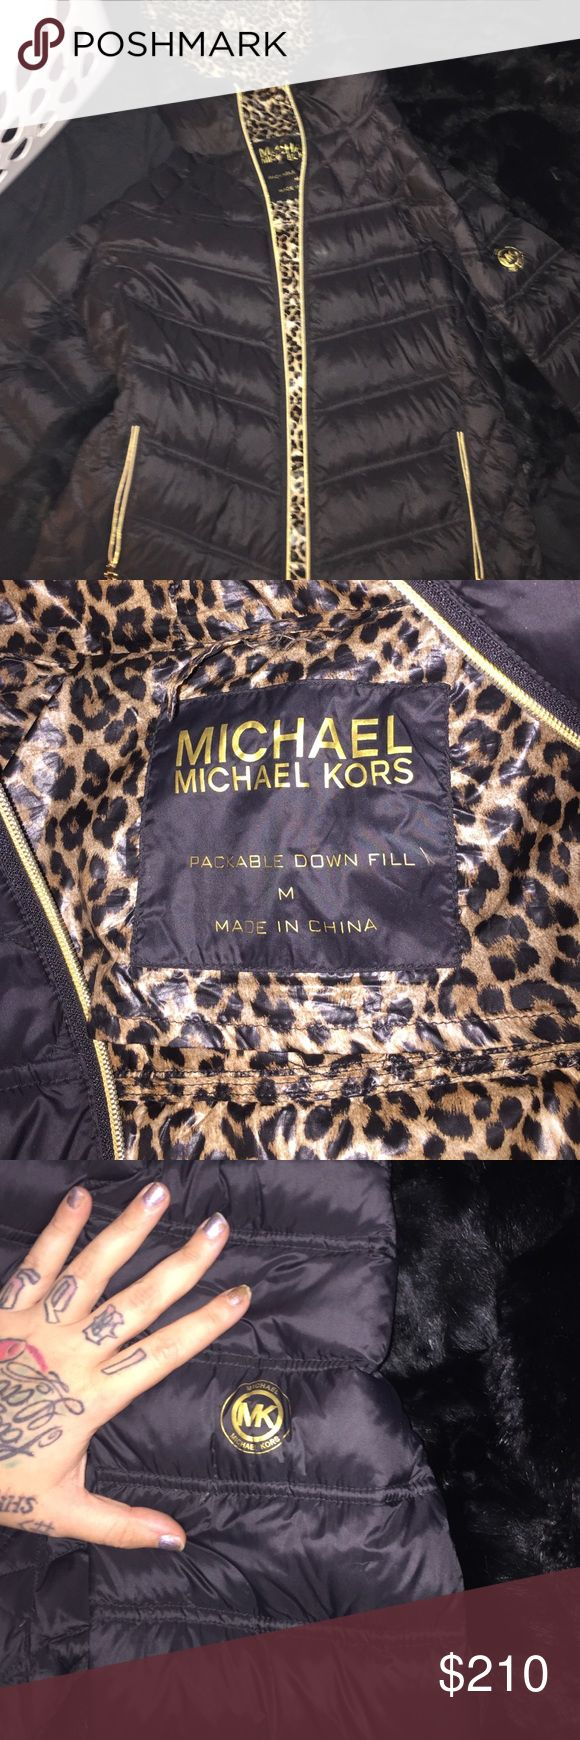 Auth. Michael Kors Down Puffer Silky black exterior with stunning gold zippers & gold dangle MK charms on each zippered pocket (two) and main zipper! Silky leopard interior, & fitting hood. MK logo in gold on left arm, filled with soft down, but a comfortable amount - not so much you look bloated! Overall great condition with a few tiny pinholes where down occasionally slips out, but was purchased this way and is common to occur. Does NOT impact wearability or function! Little coat hanger…